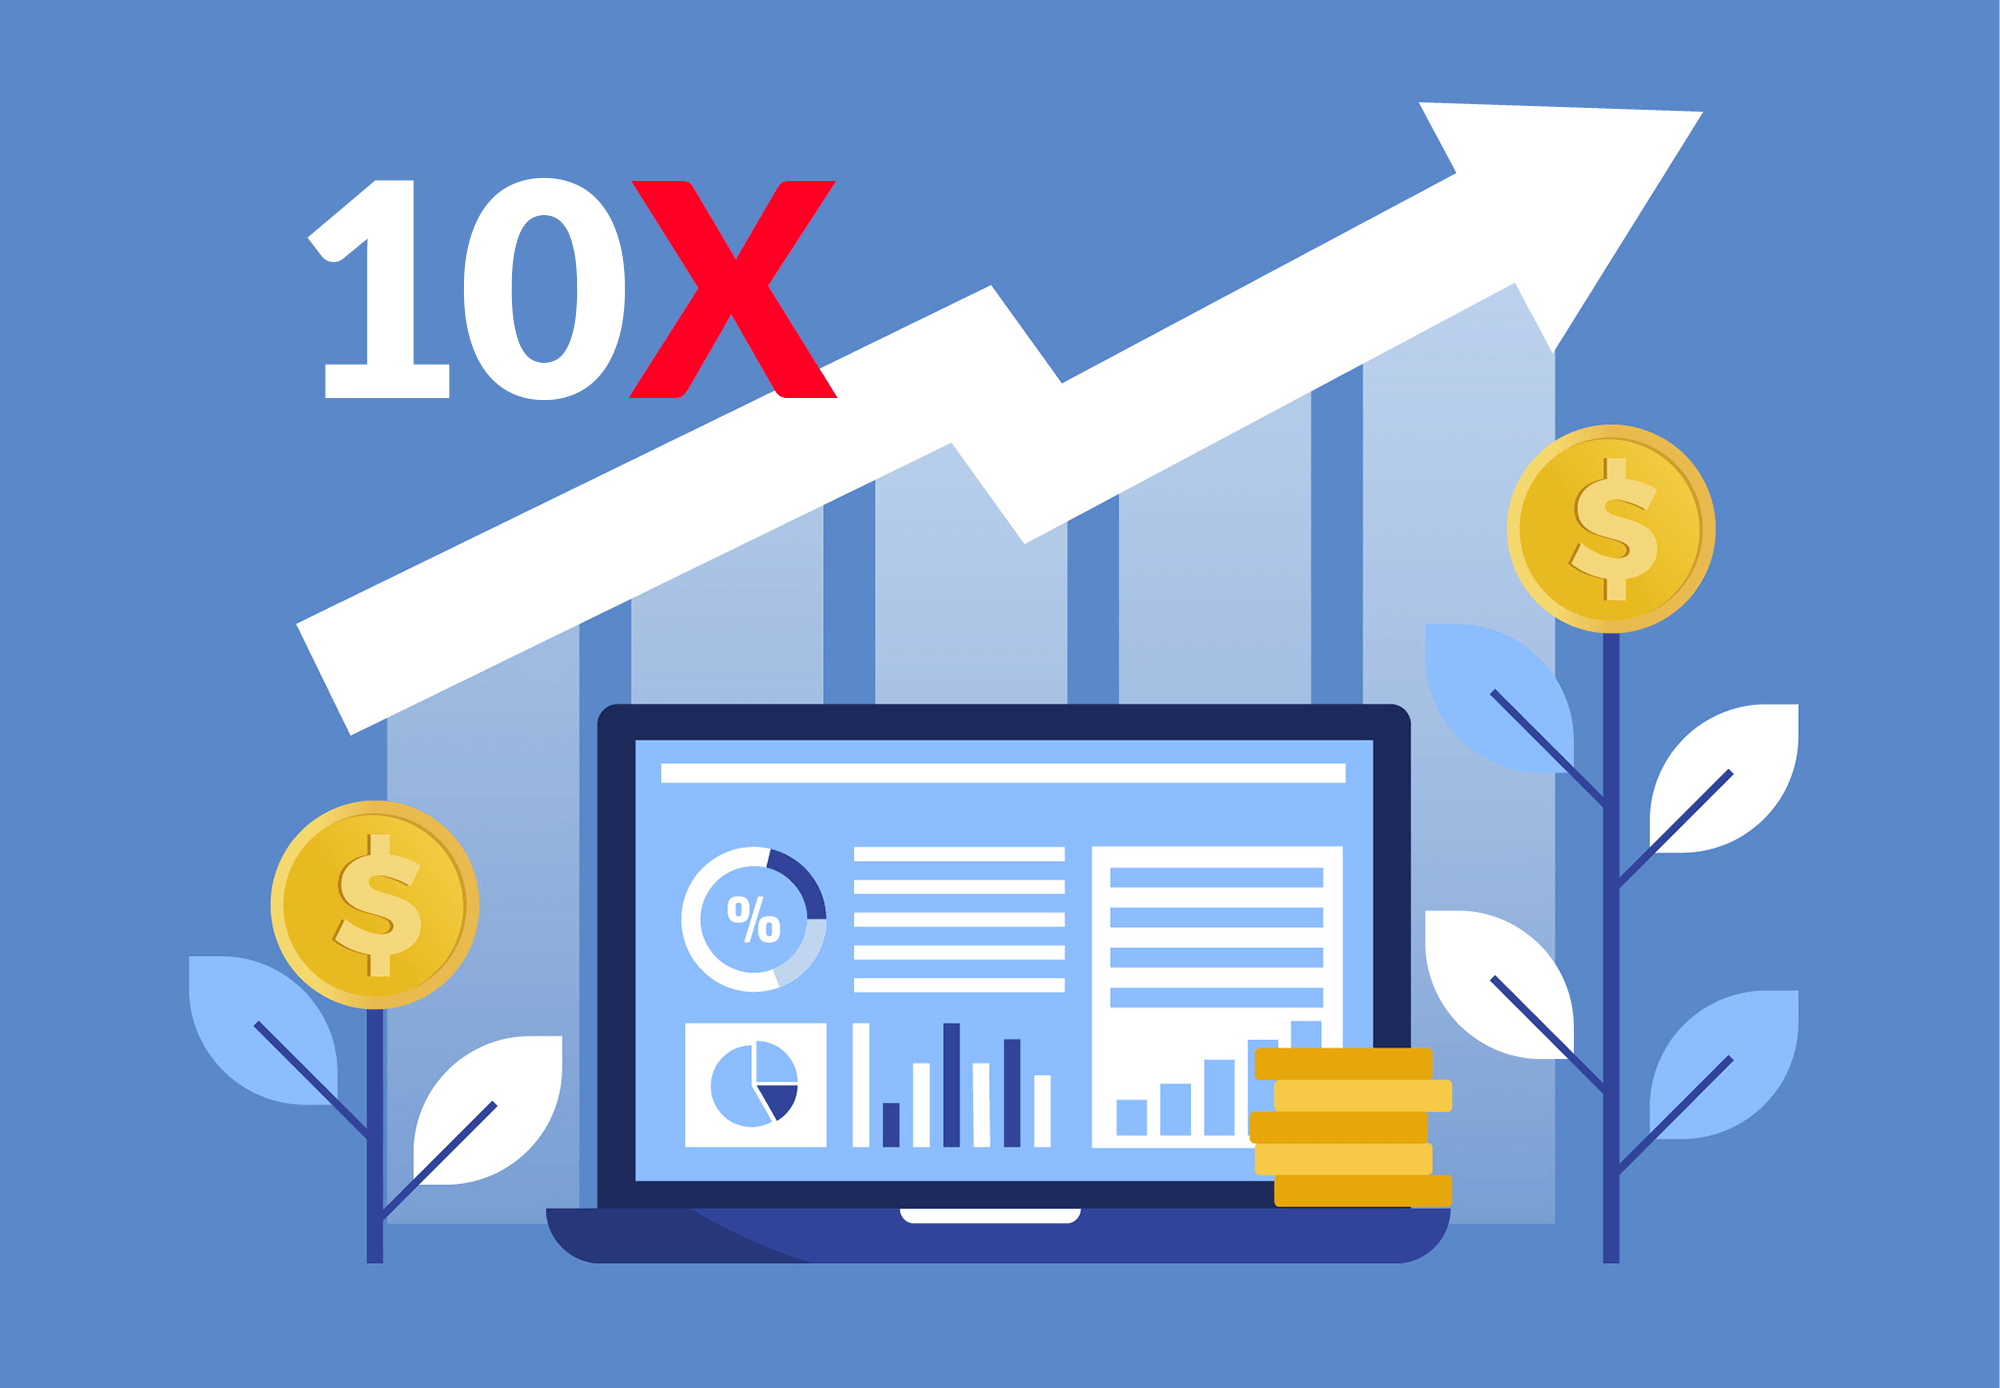 Growing an already Growing Business: The 10X Secret